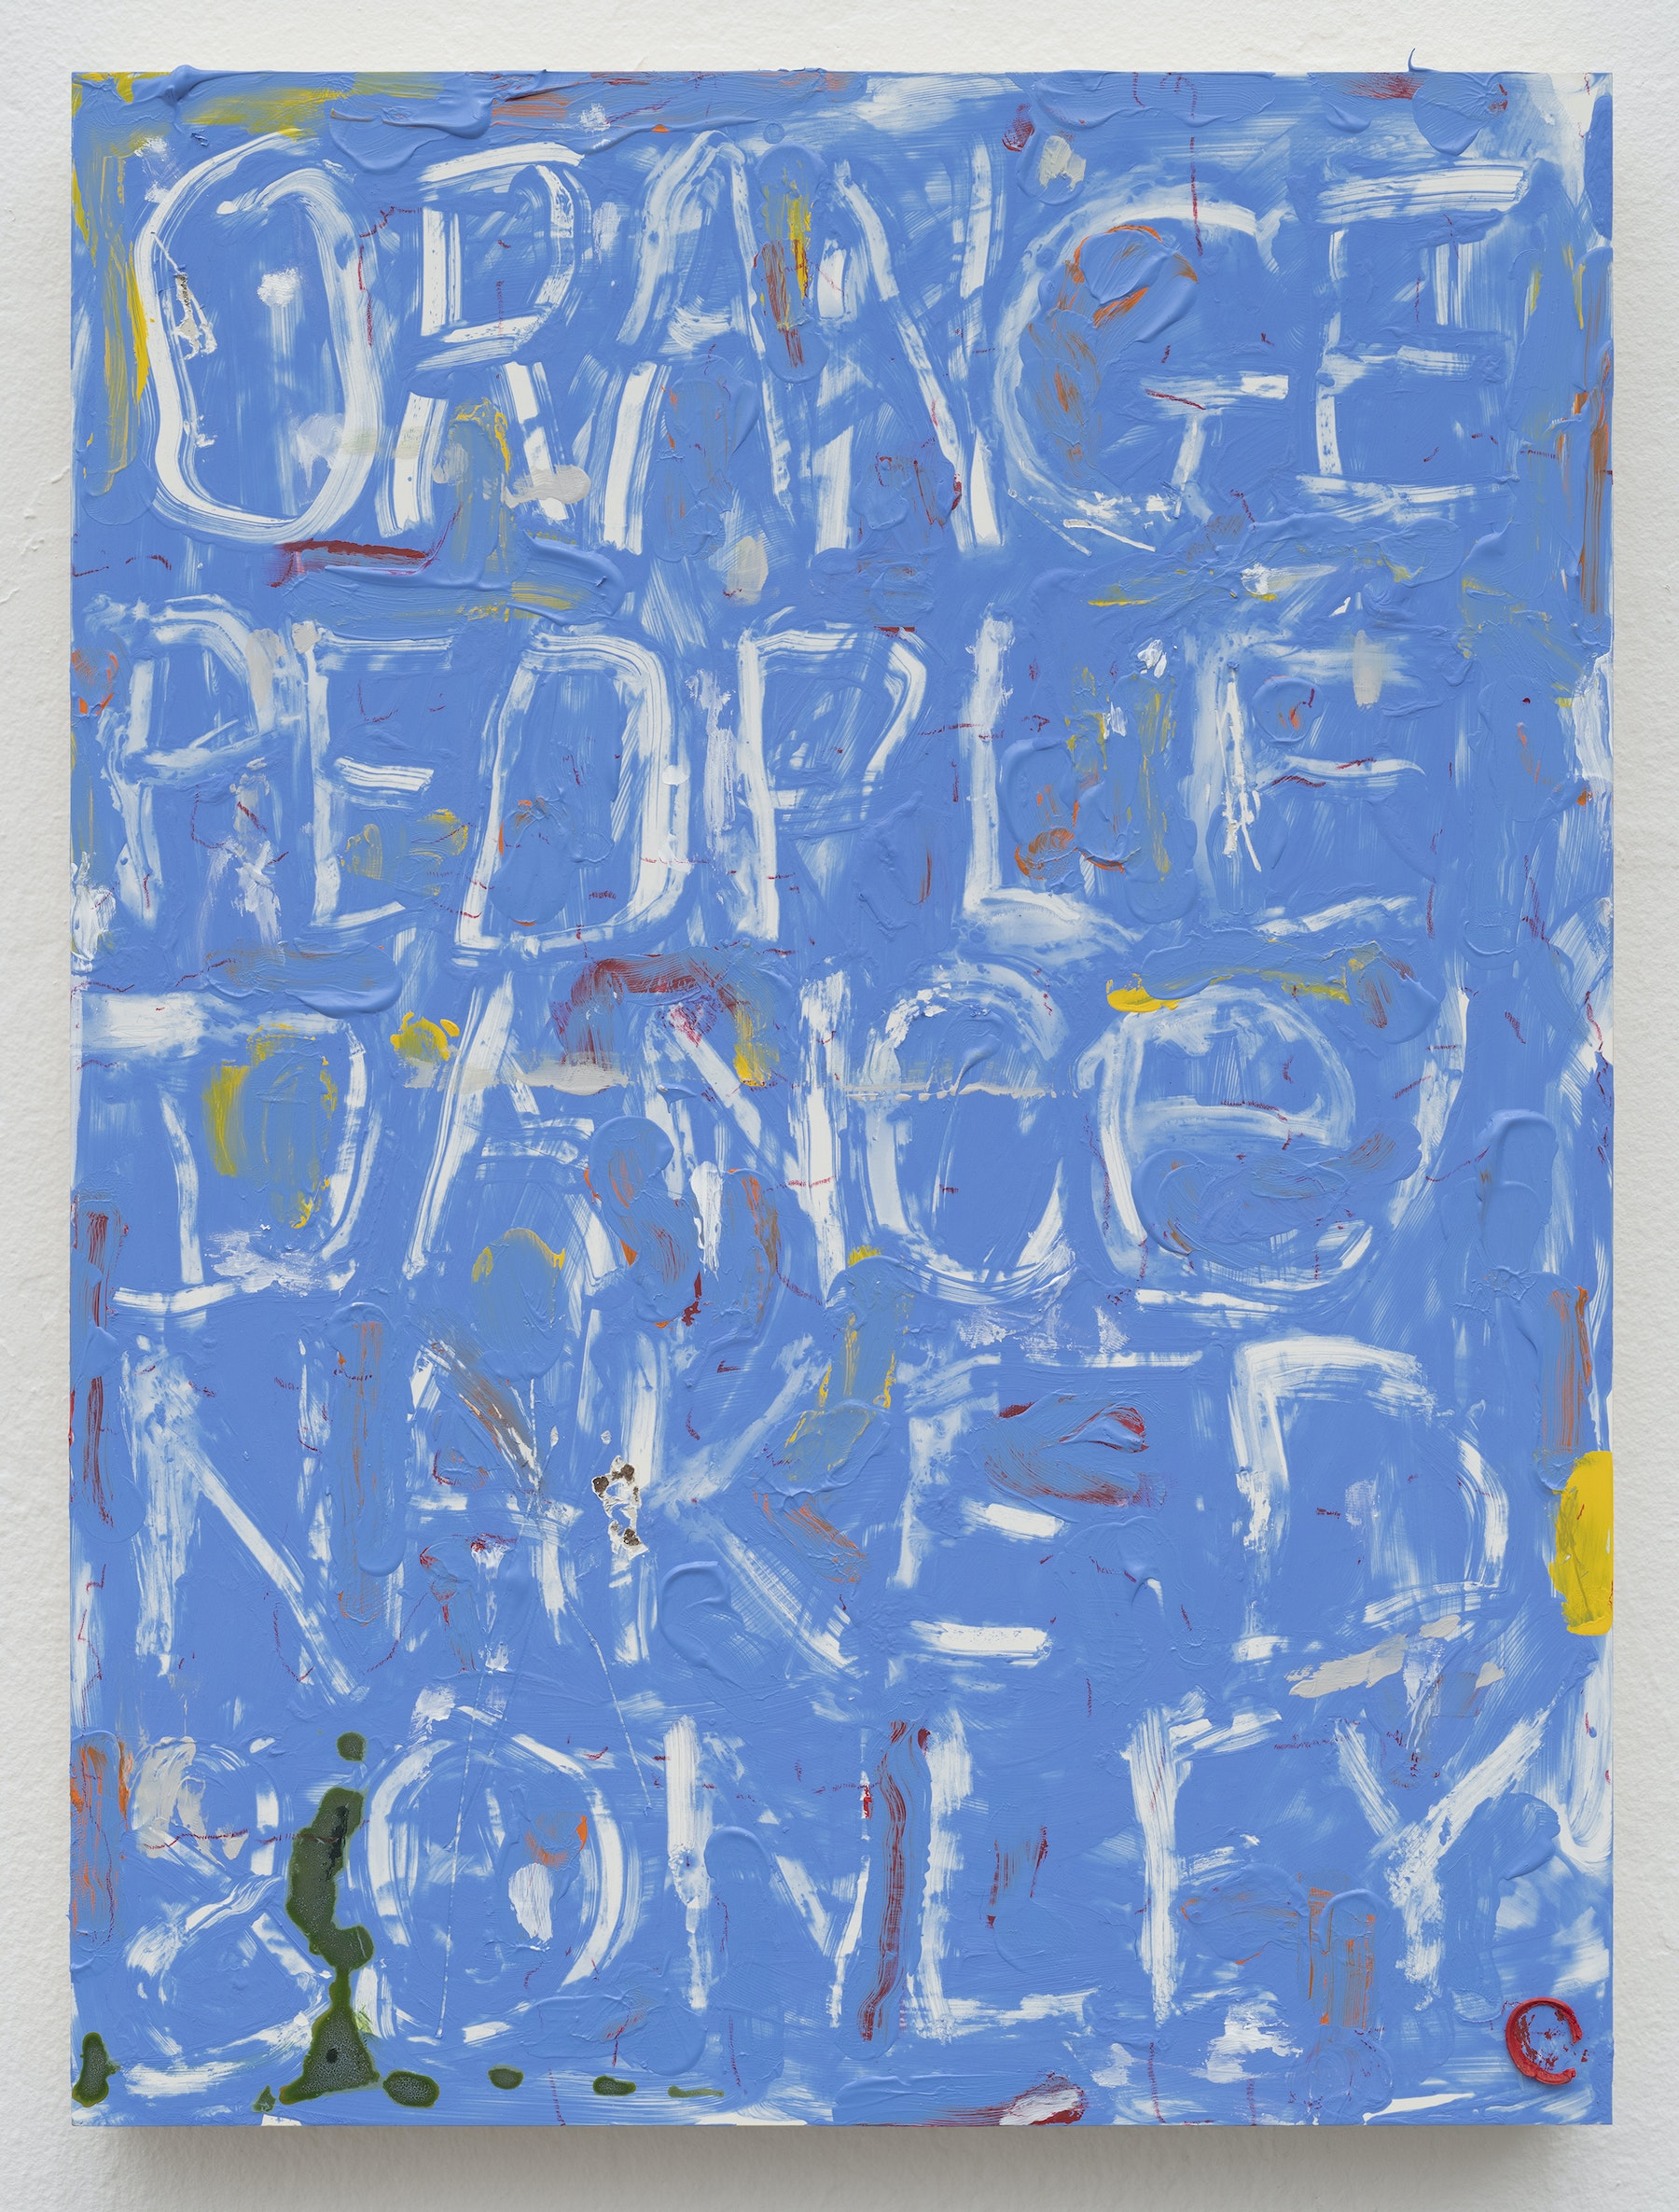 "Pope.L ""Blue Painting with Words and Other Things,"" 2019 Acrylic, oil, ink, and pastel on panel 16 x 12 x 1.5"" [HxWxD] (40.64 x 30.48 x 3.81 cm) Inventory #POP344 Courtesy of the Artist and Vielmetter Los Angeles. © Pope.L Photos credit: James Prinz"